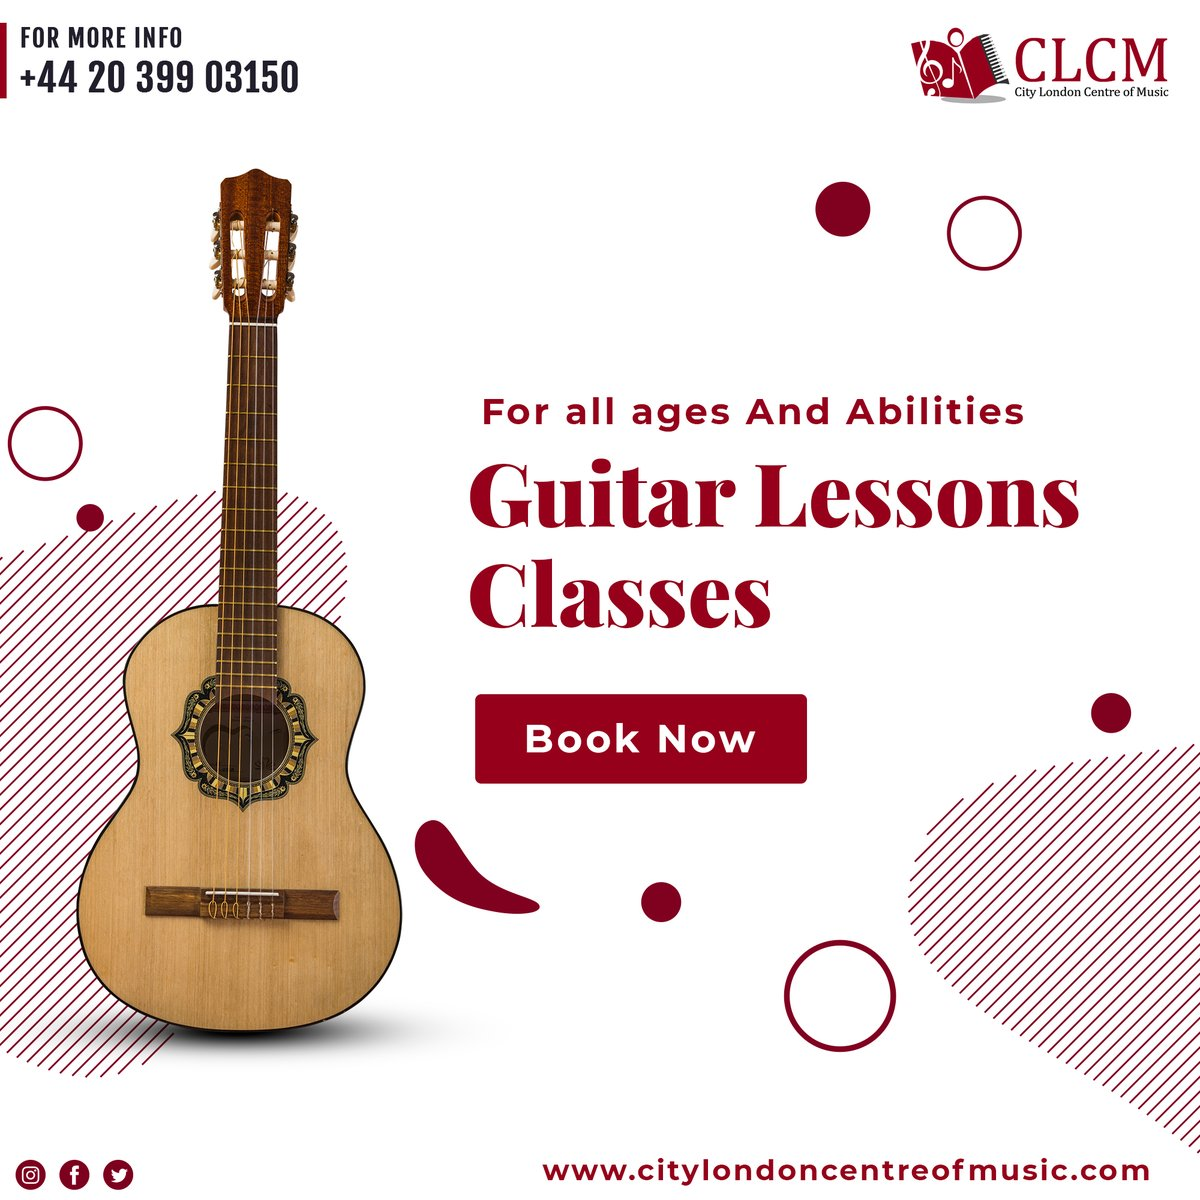 For all ages and abilities Guitar Lessons in London.  Book your Class Now at https://t.co/GUkqTRorpI  #clcm #CityLondonCentreOfMusic #UK #musicteacher #musicschool #PianoLessons #ViolinLesson #SingingLessons #london #onlinelessons #StayHomeStaySafe #GuitarLessons #Battersea https://t.co/CiULDFevyy